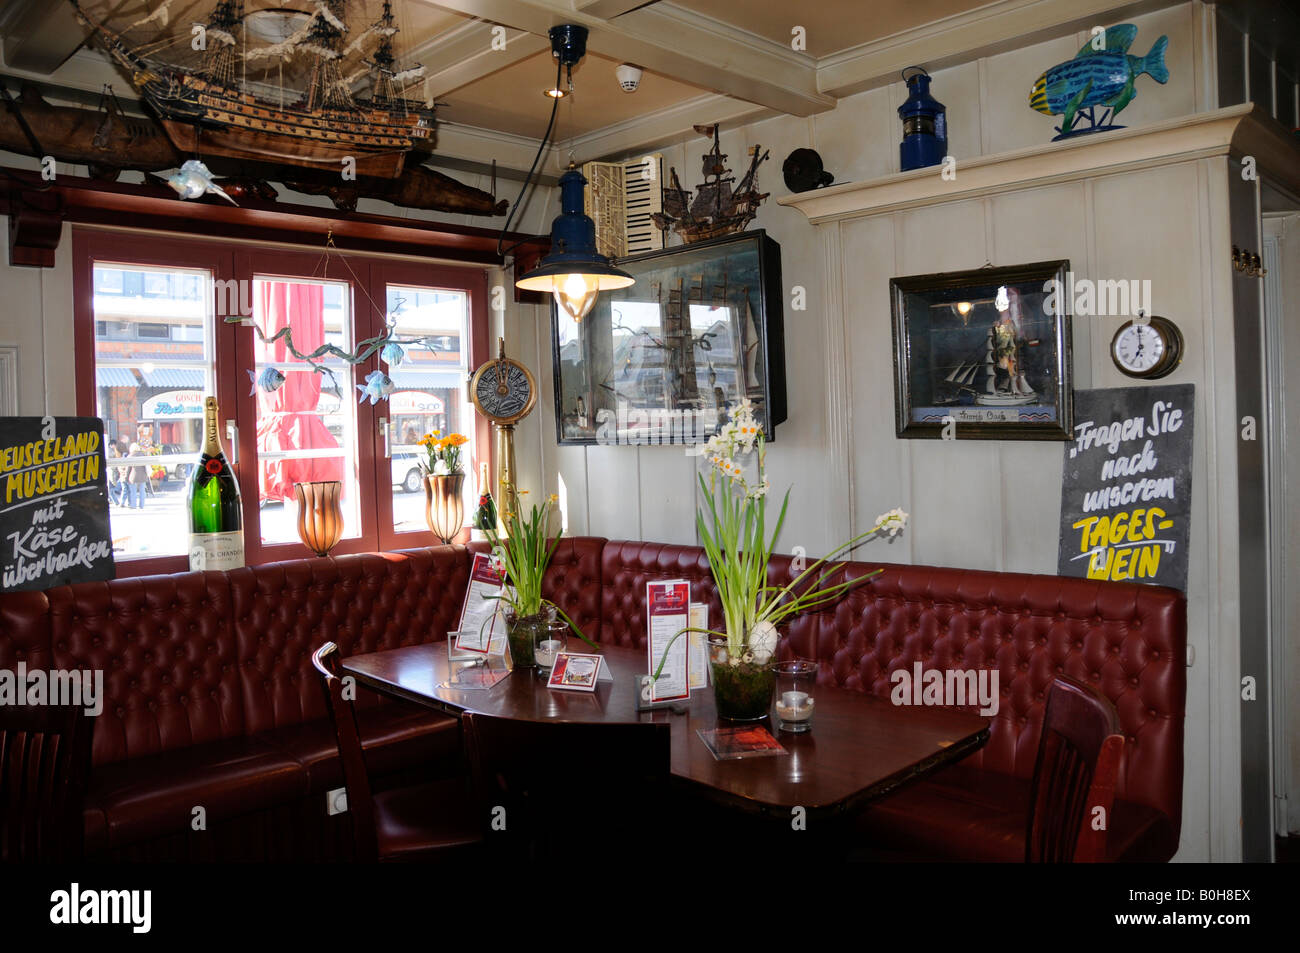 Restaurant Room Decorated With Nautical Memorabilia Of The Stock Photo Alamy